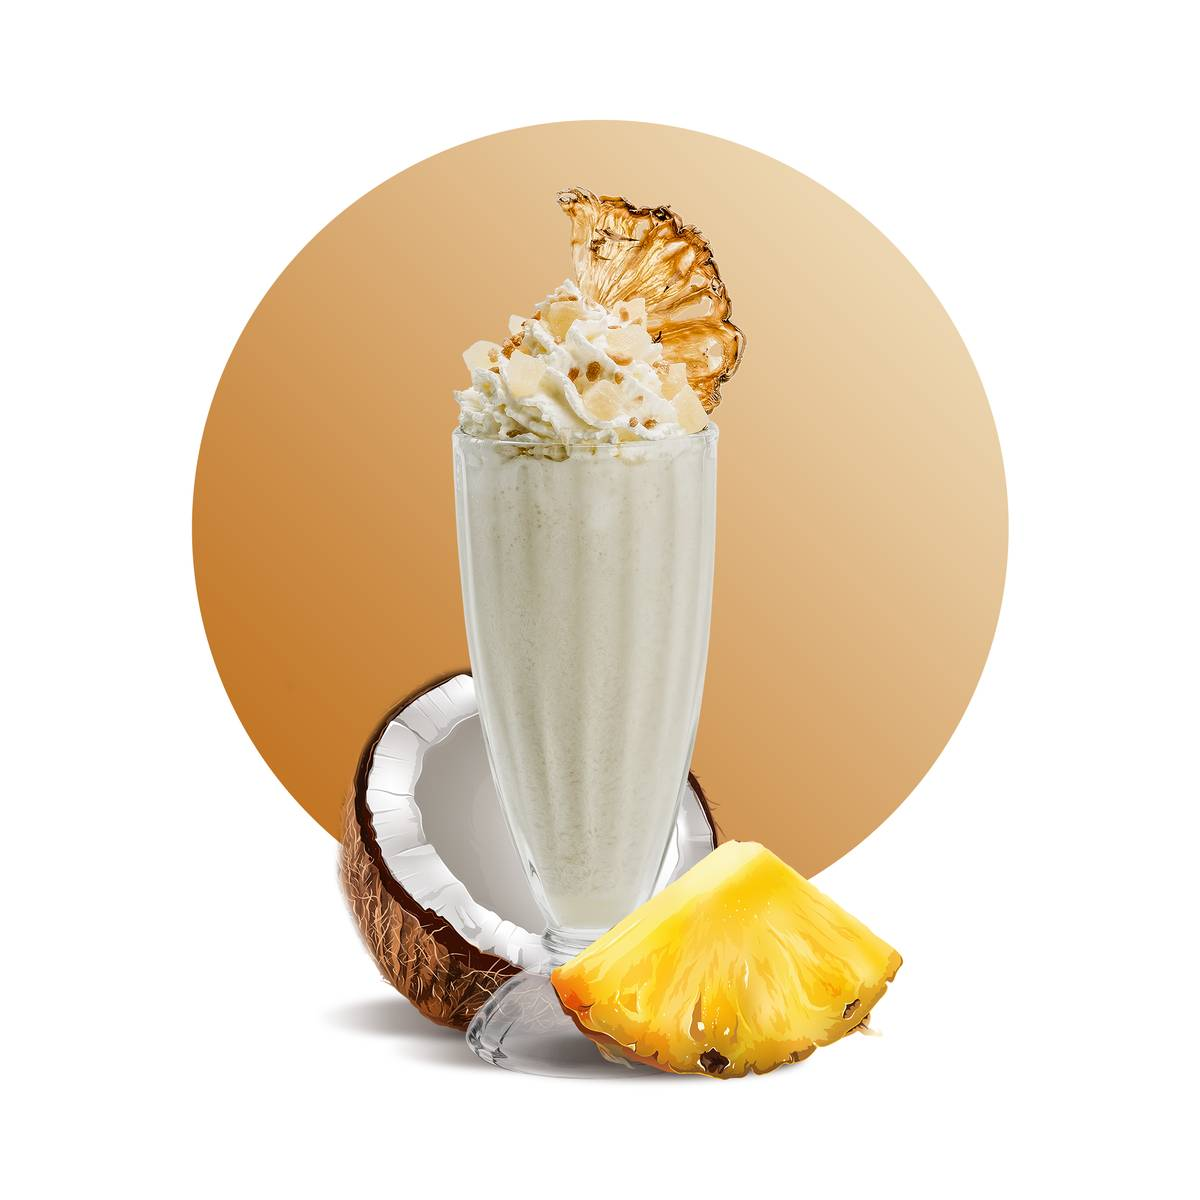 Pineapple Milkshake Drink Recipe